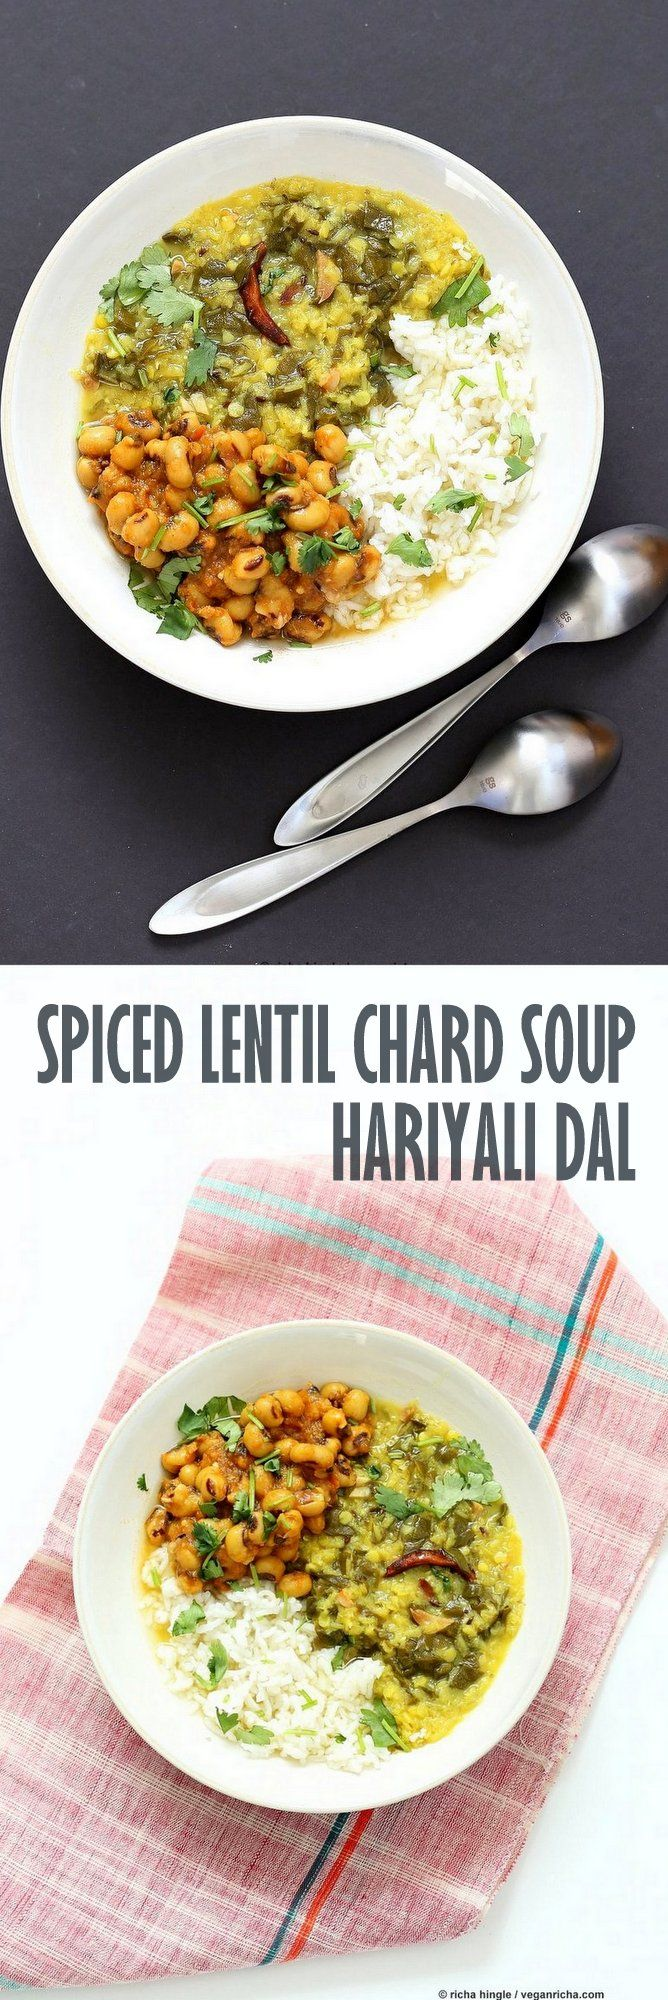 Spiced Lentil Chard Soup - Hariyali Dal. Creamy Red Lentils Cooked with Chard or…